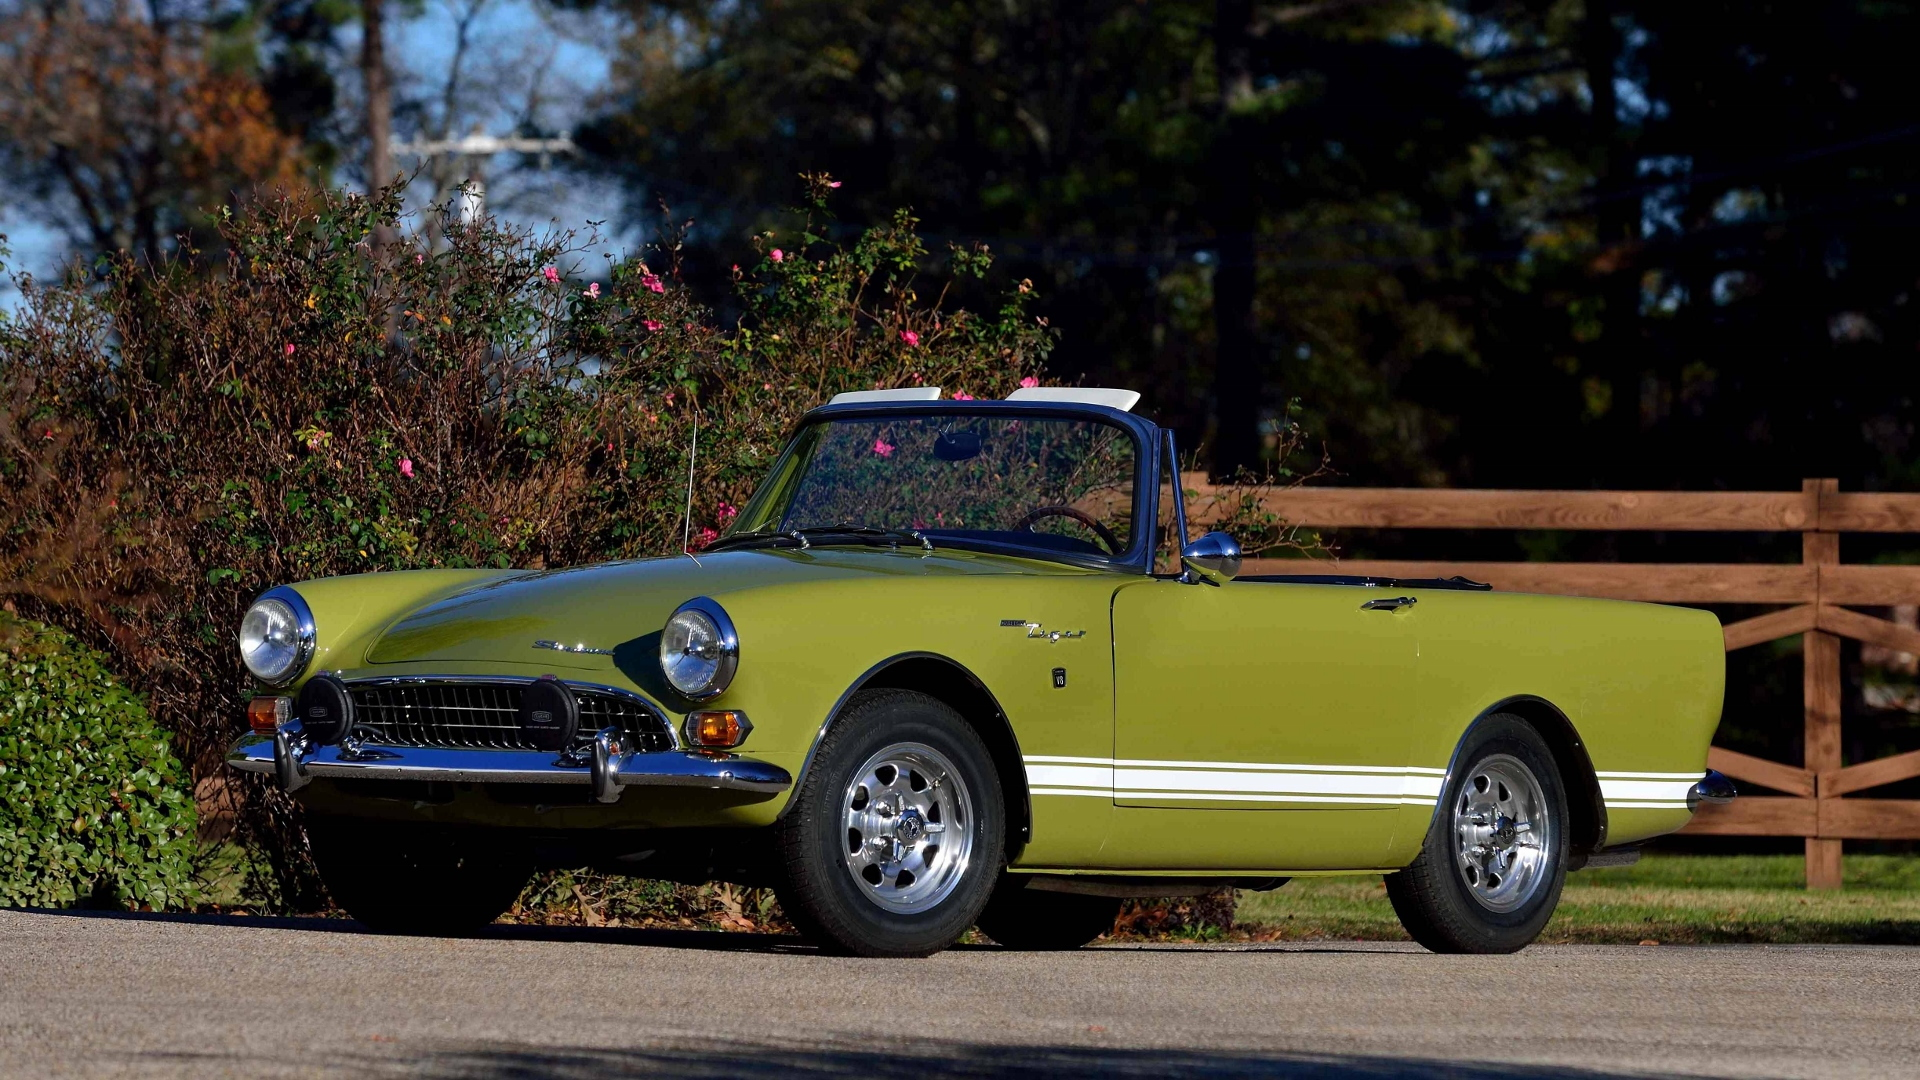 Jim McMurrey collection, 1967 Sunbeam Tiger Mk II roadster